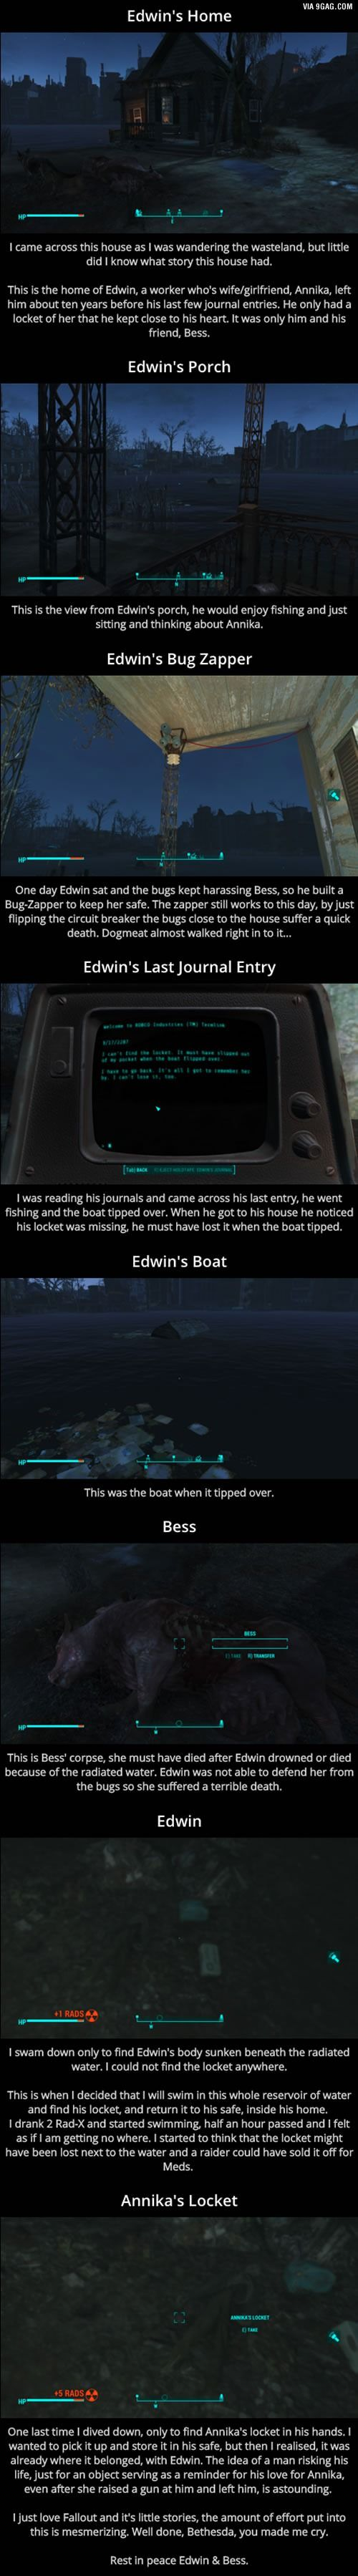 [Fallout 4] One of the saddest stories